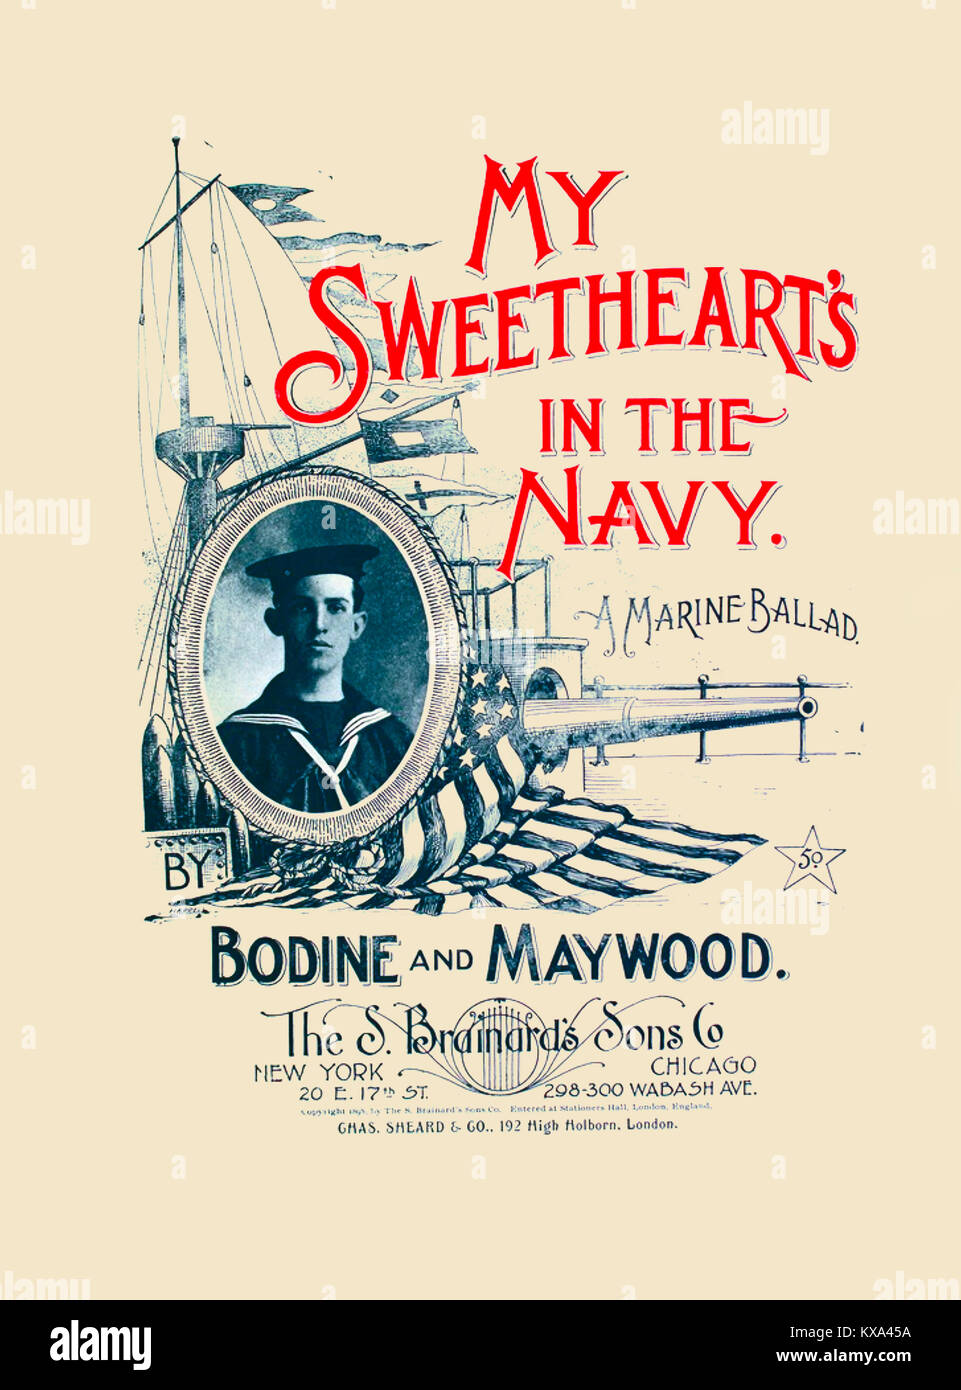 My Sweetheart's in the Navy - Stock Image